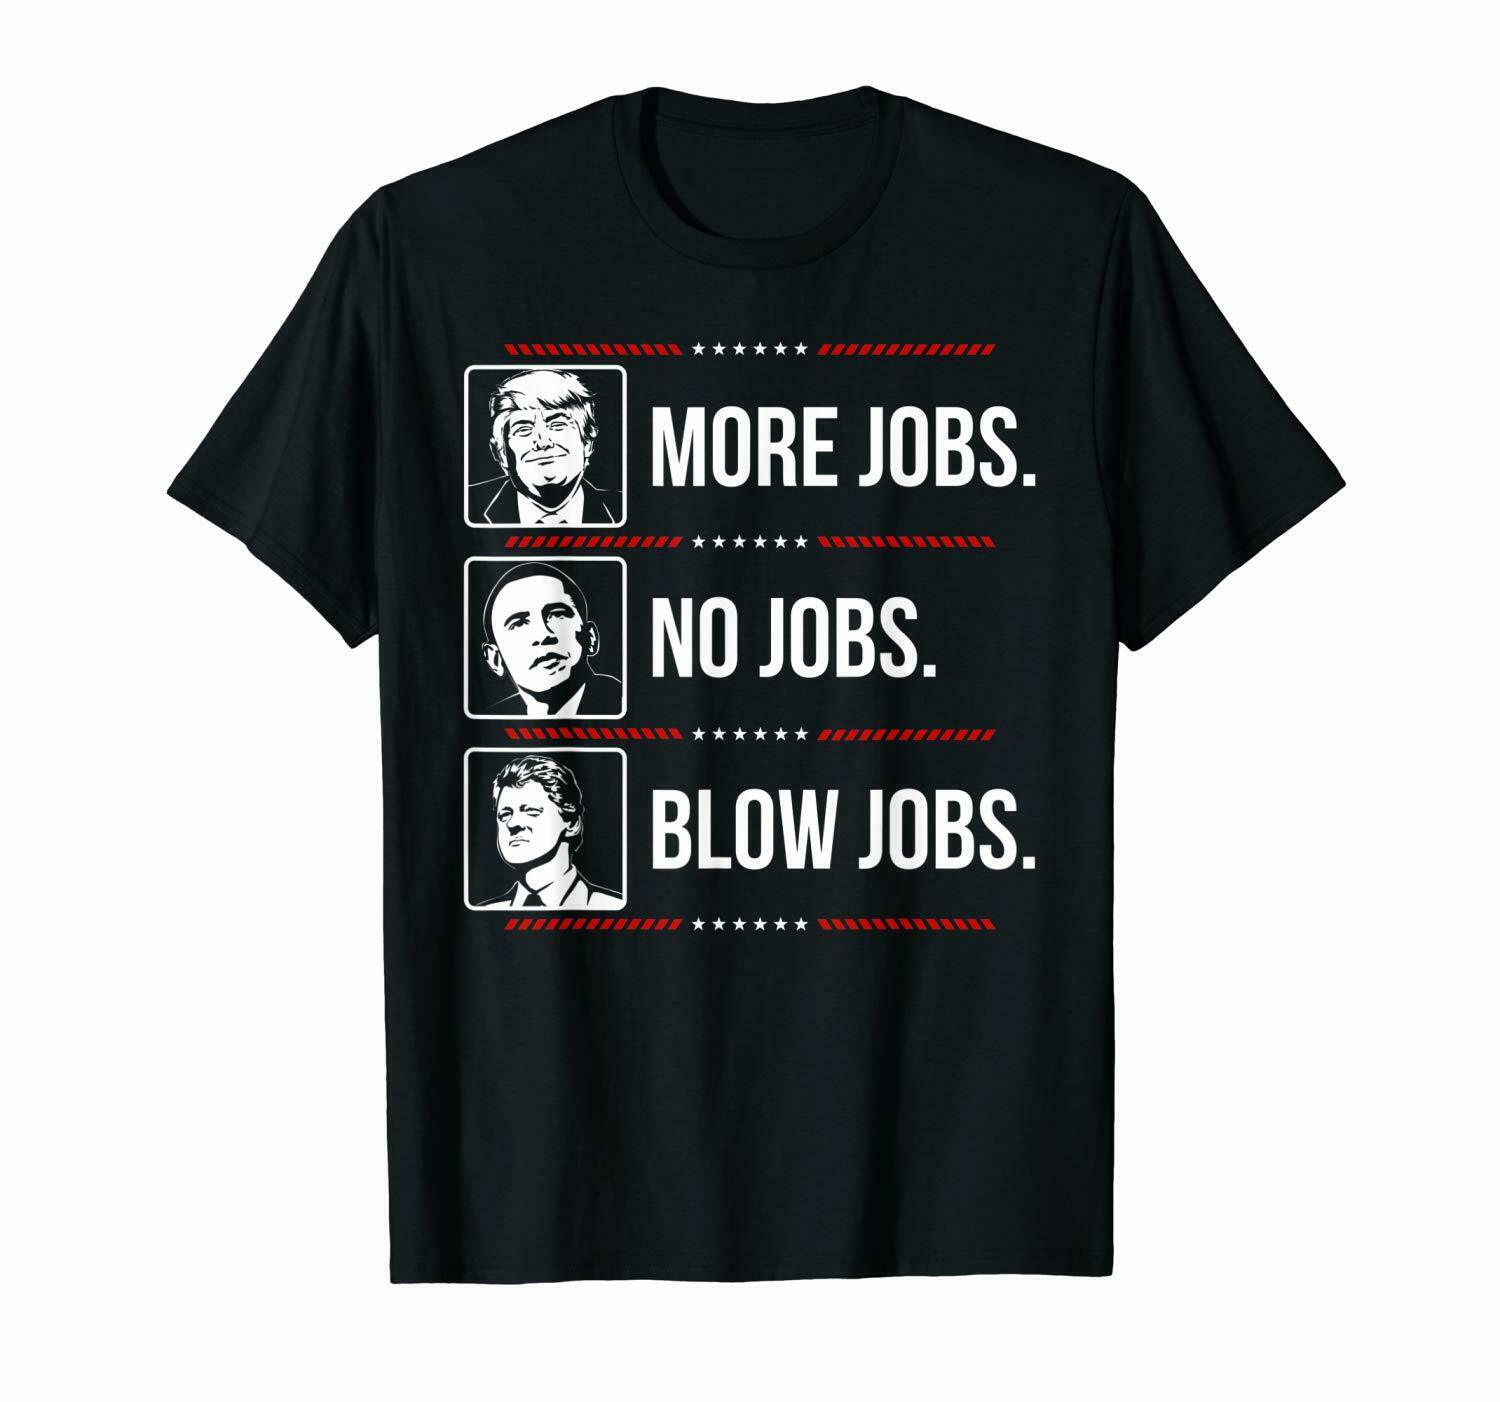 Trump More Jobs Obama No Jobs Bill Cinton B Jobs Trump 2020 T-shirt Cotton S-3XL image